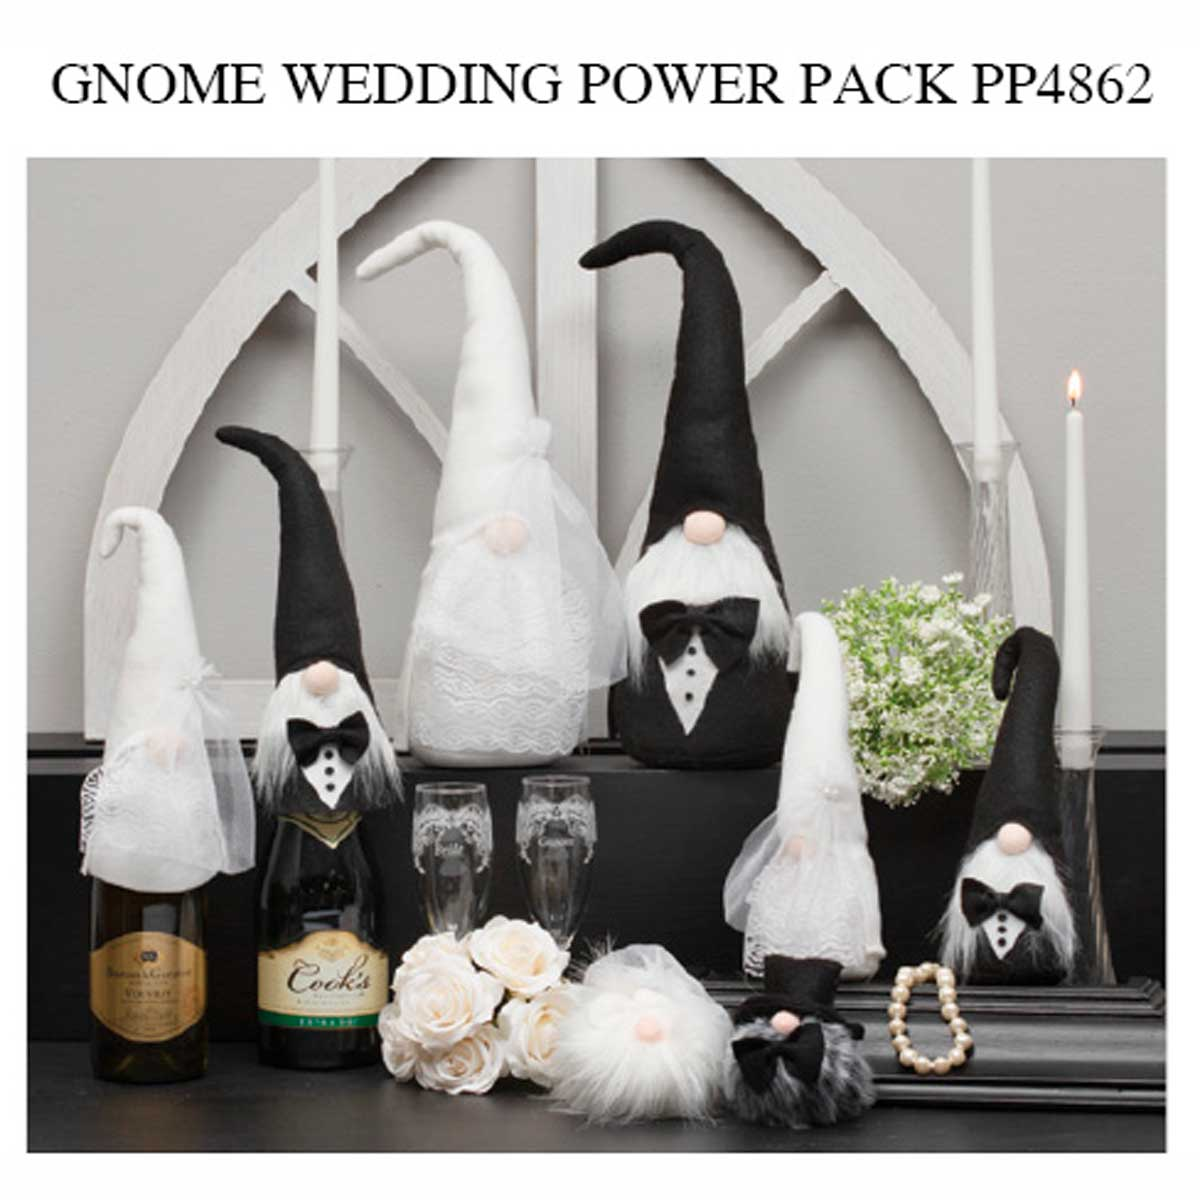 Wedding Gnomer Power Pack 26 units PP4862